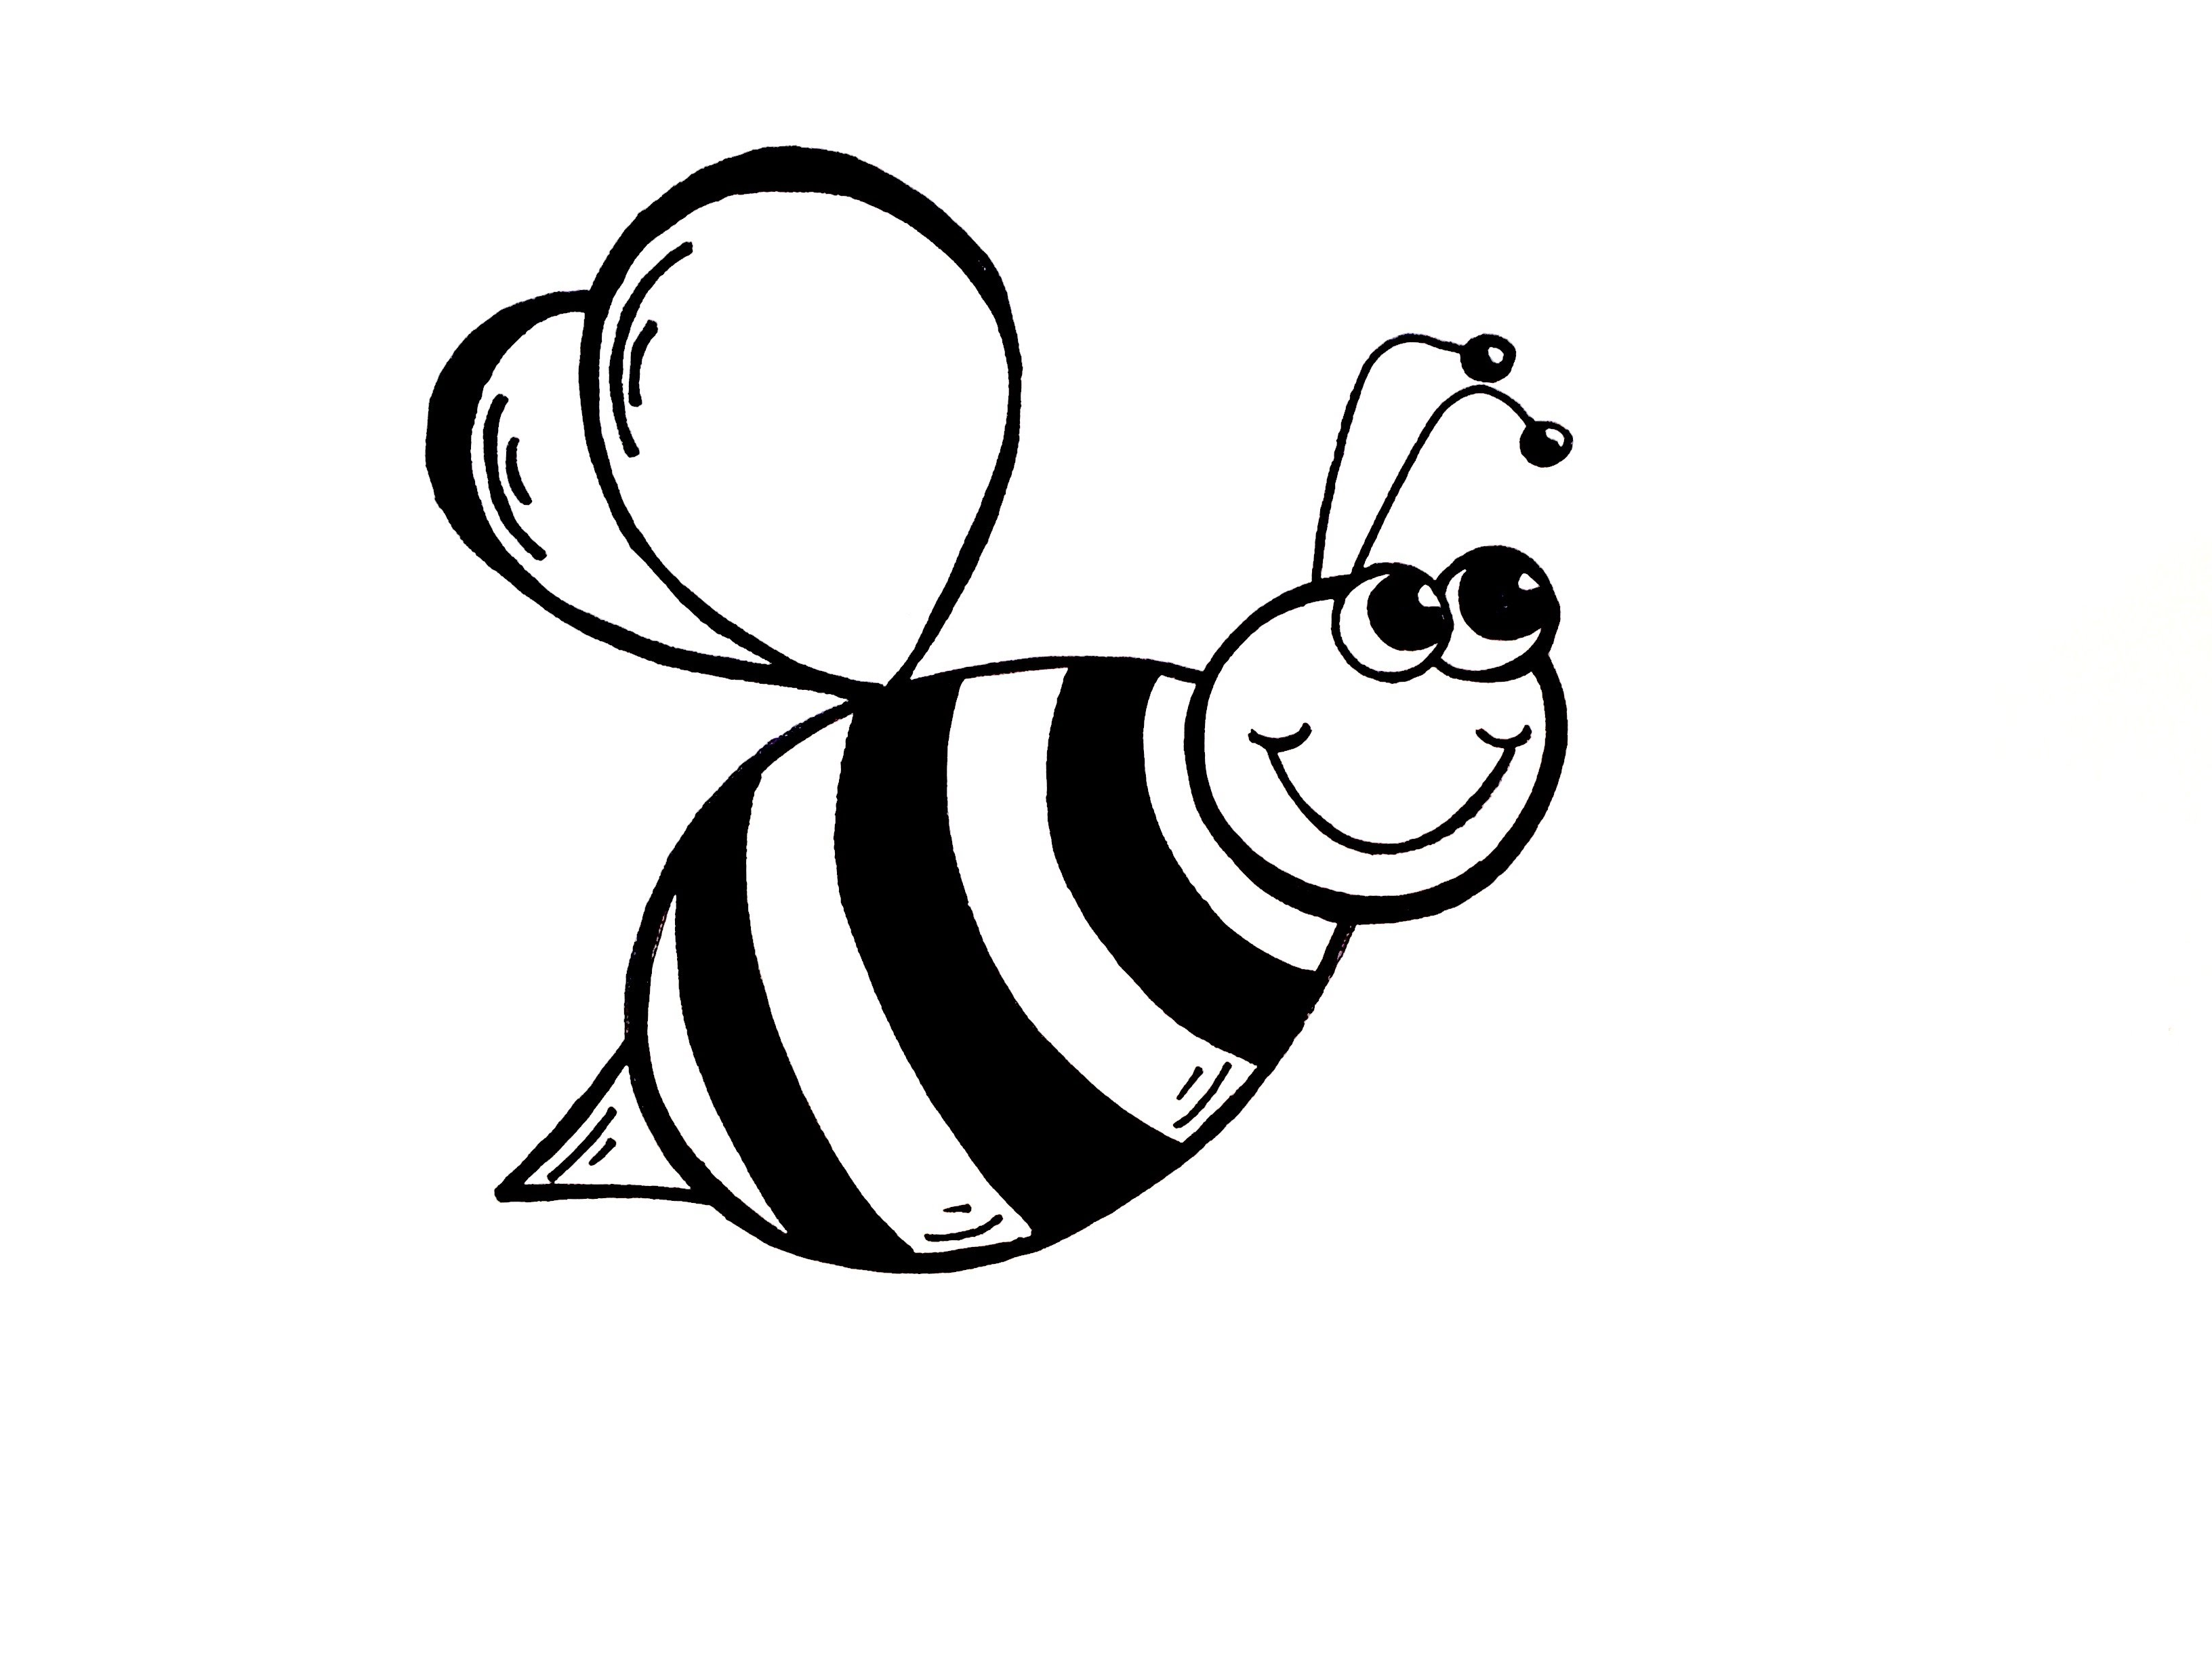 3264x2448 Drawing Lesson How To Draw A Bumble Bee